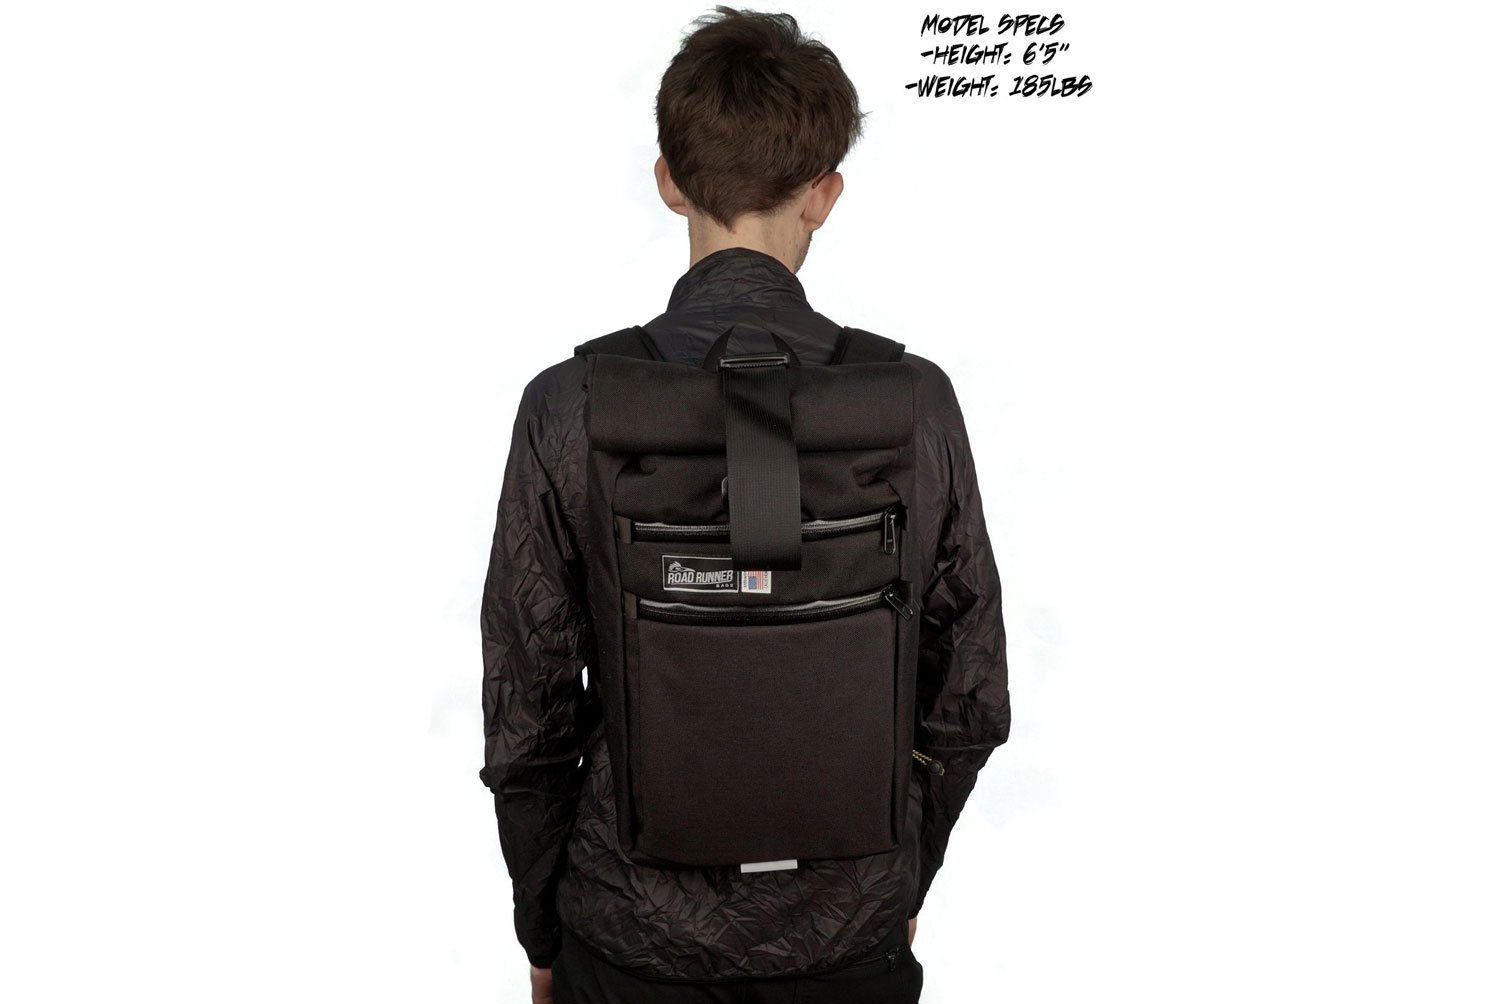 Small Roll Top Backpack-Pro  (スモールロールトップバッグ・プロ)